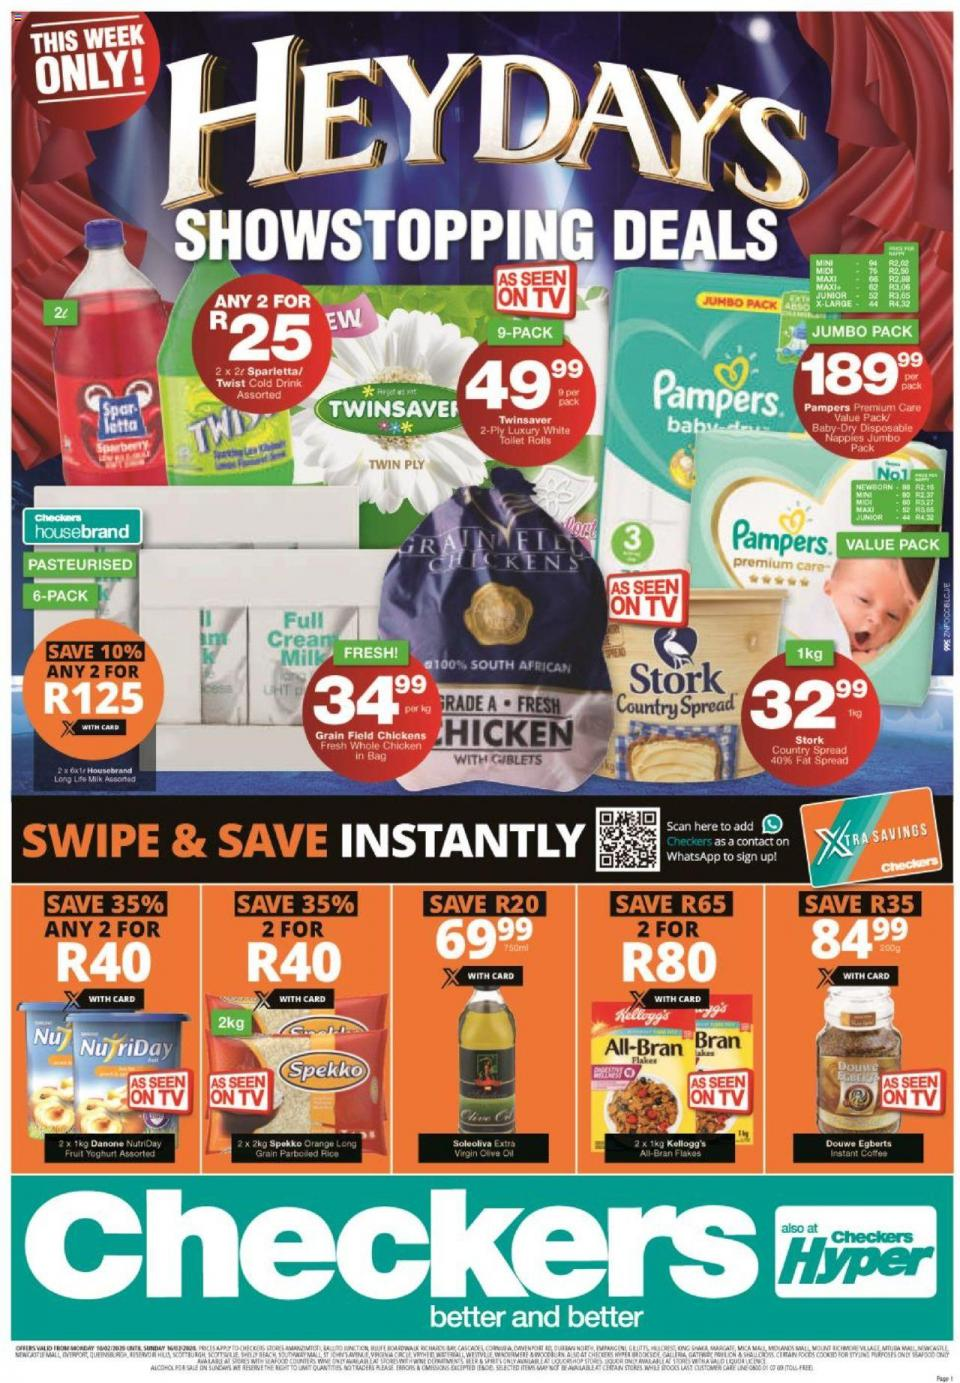 checkers specials l heydays promotion 10 february 2020